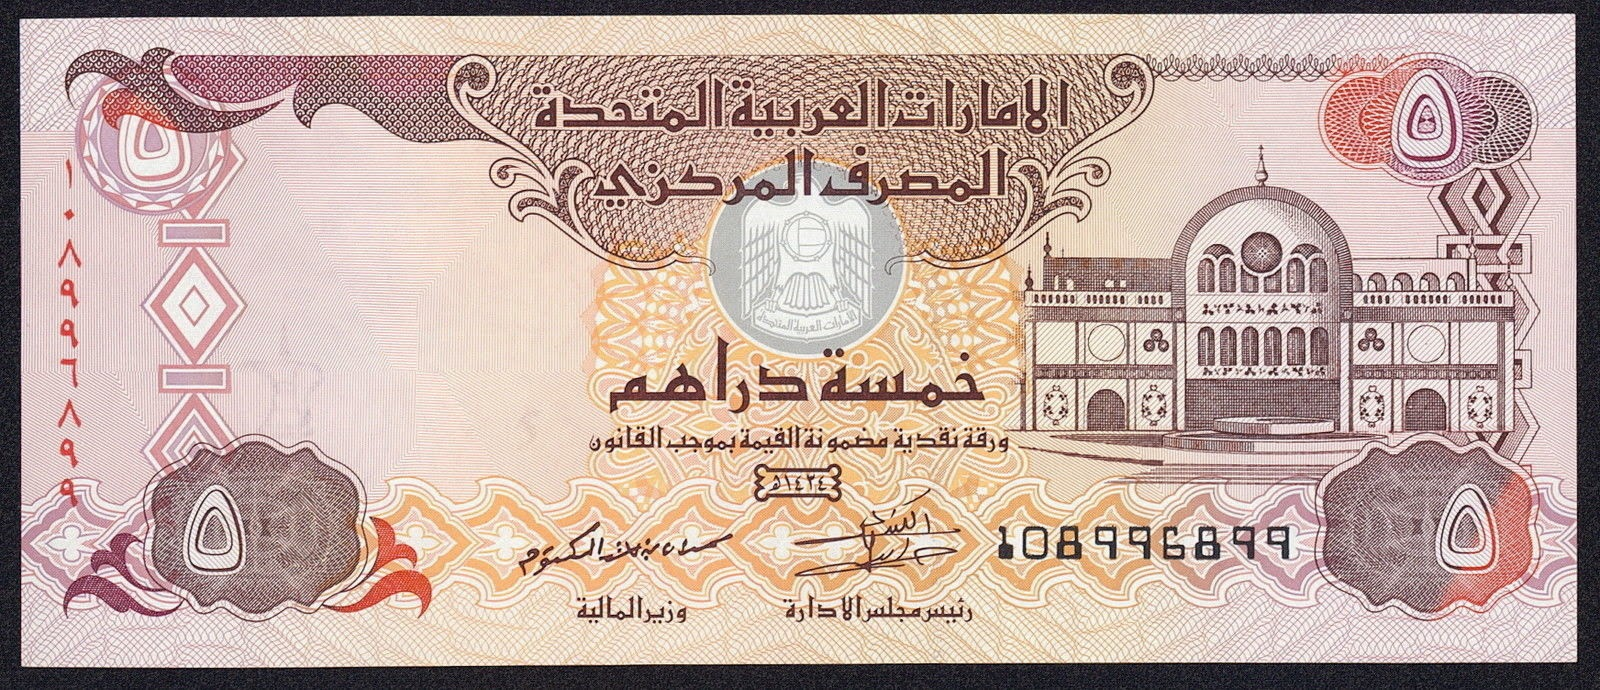 United Arab Emirates banknotes 5 Dirham note 2013 Blue Souk in Sharjah